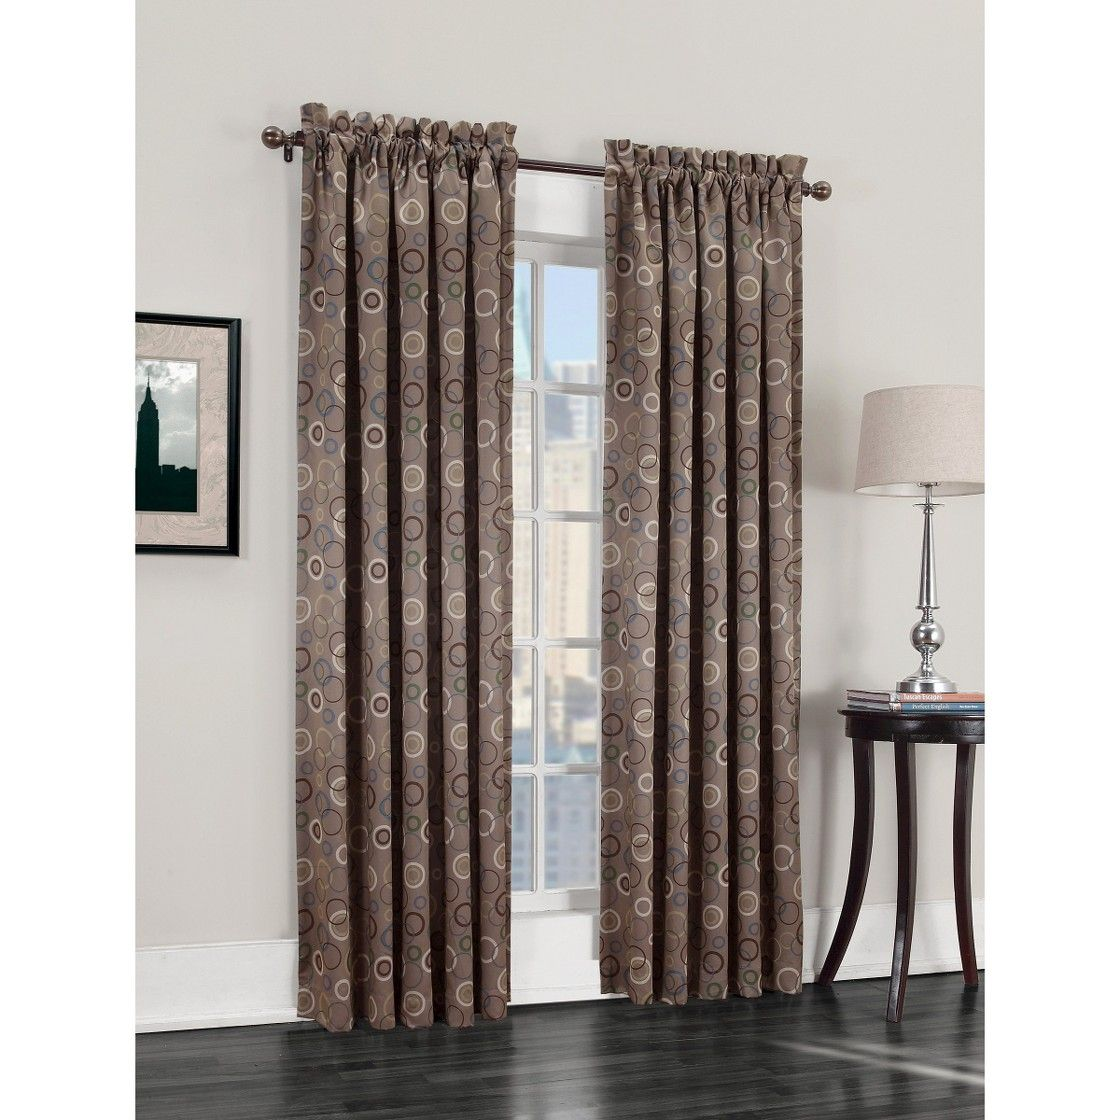 Sun Zero Capella Room Darkening Circles Curtain Panel